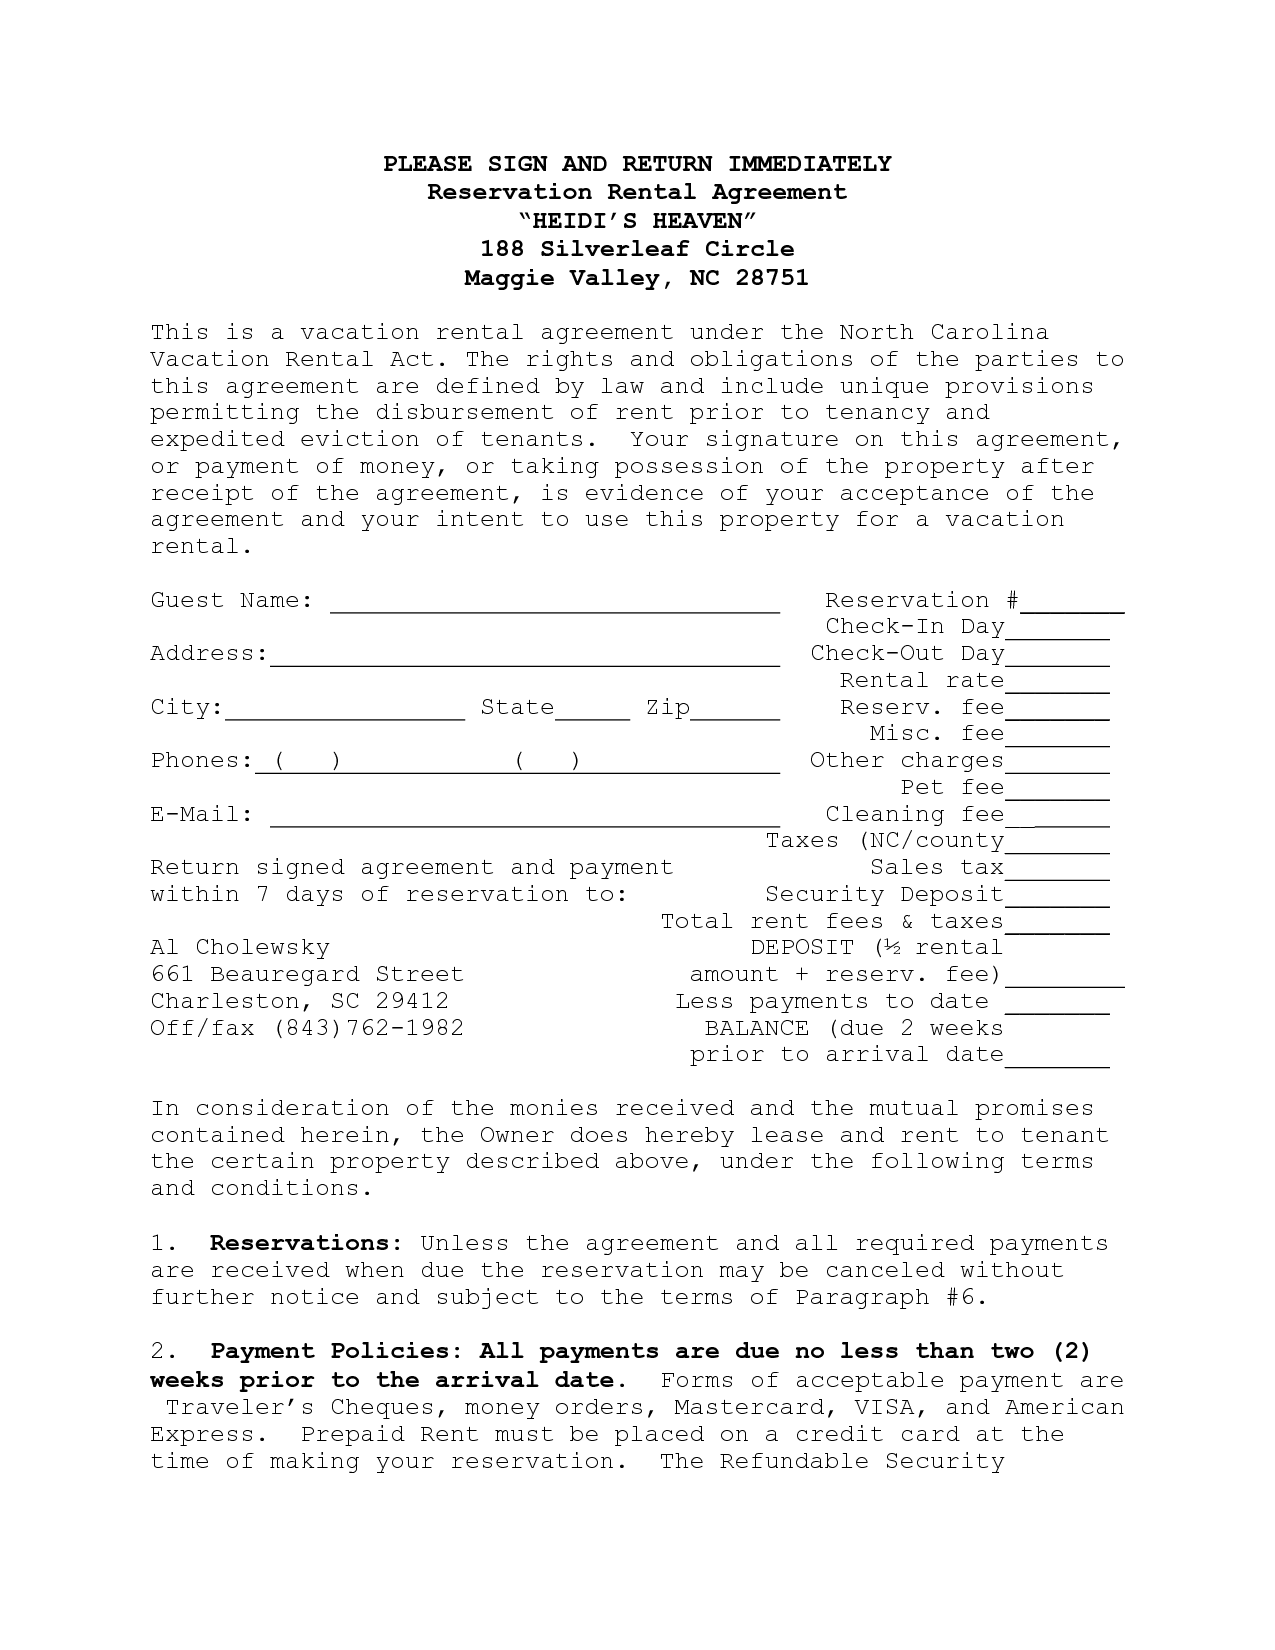 House Lease Agreement Template House Rental Agreement Contract In - House lease agreement template